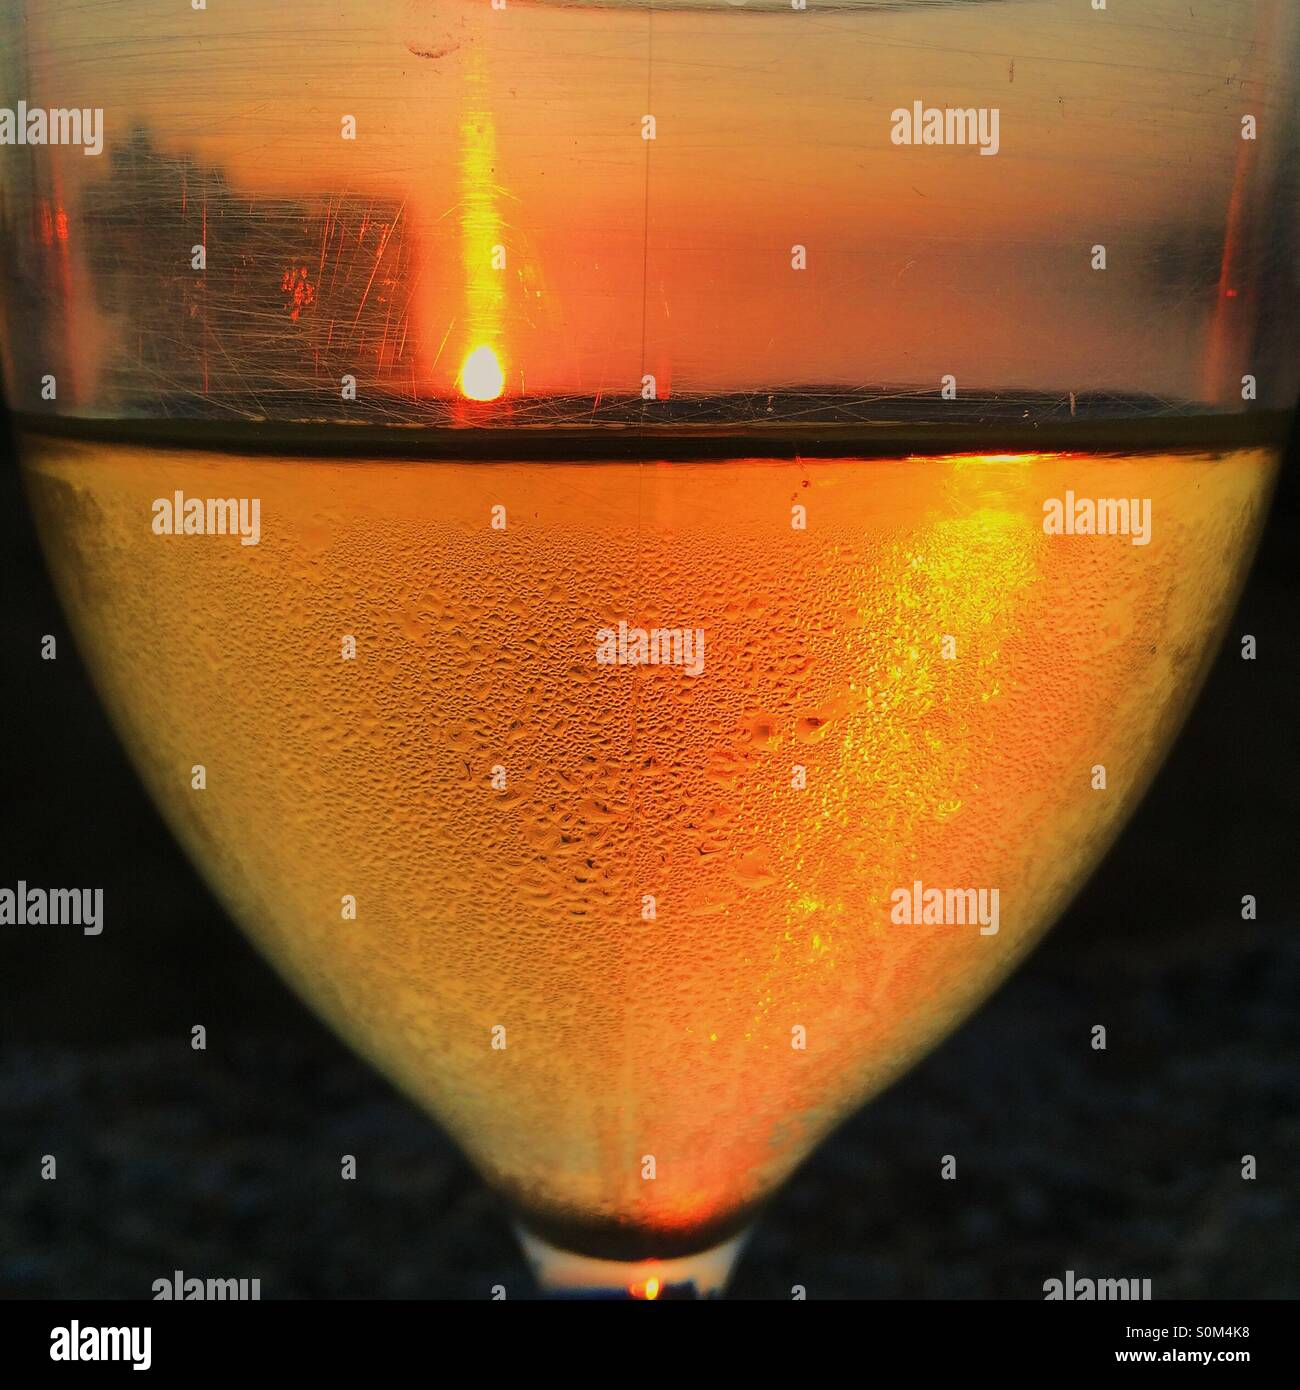 Sunset in a glass of wine - Stock Image